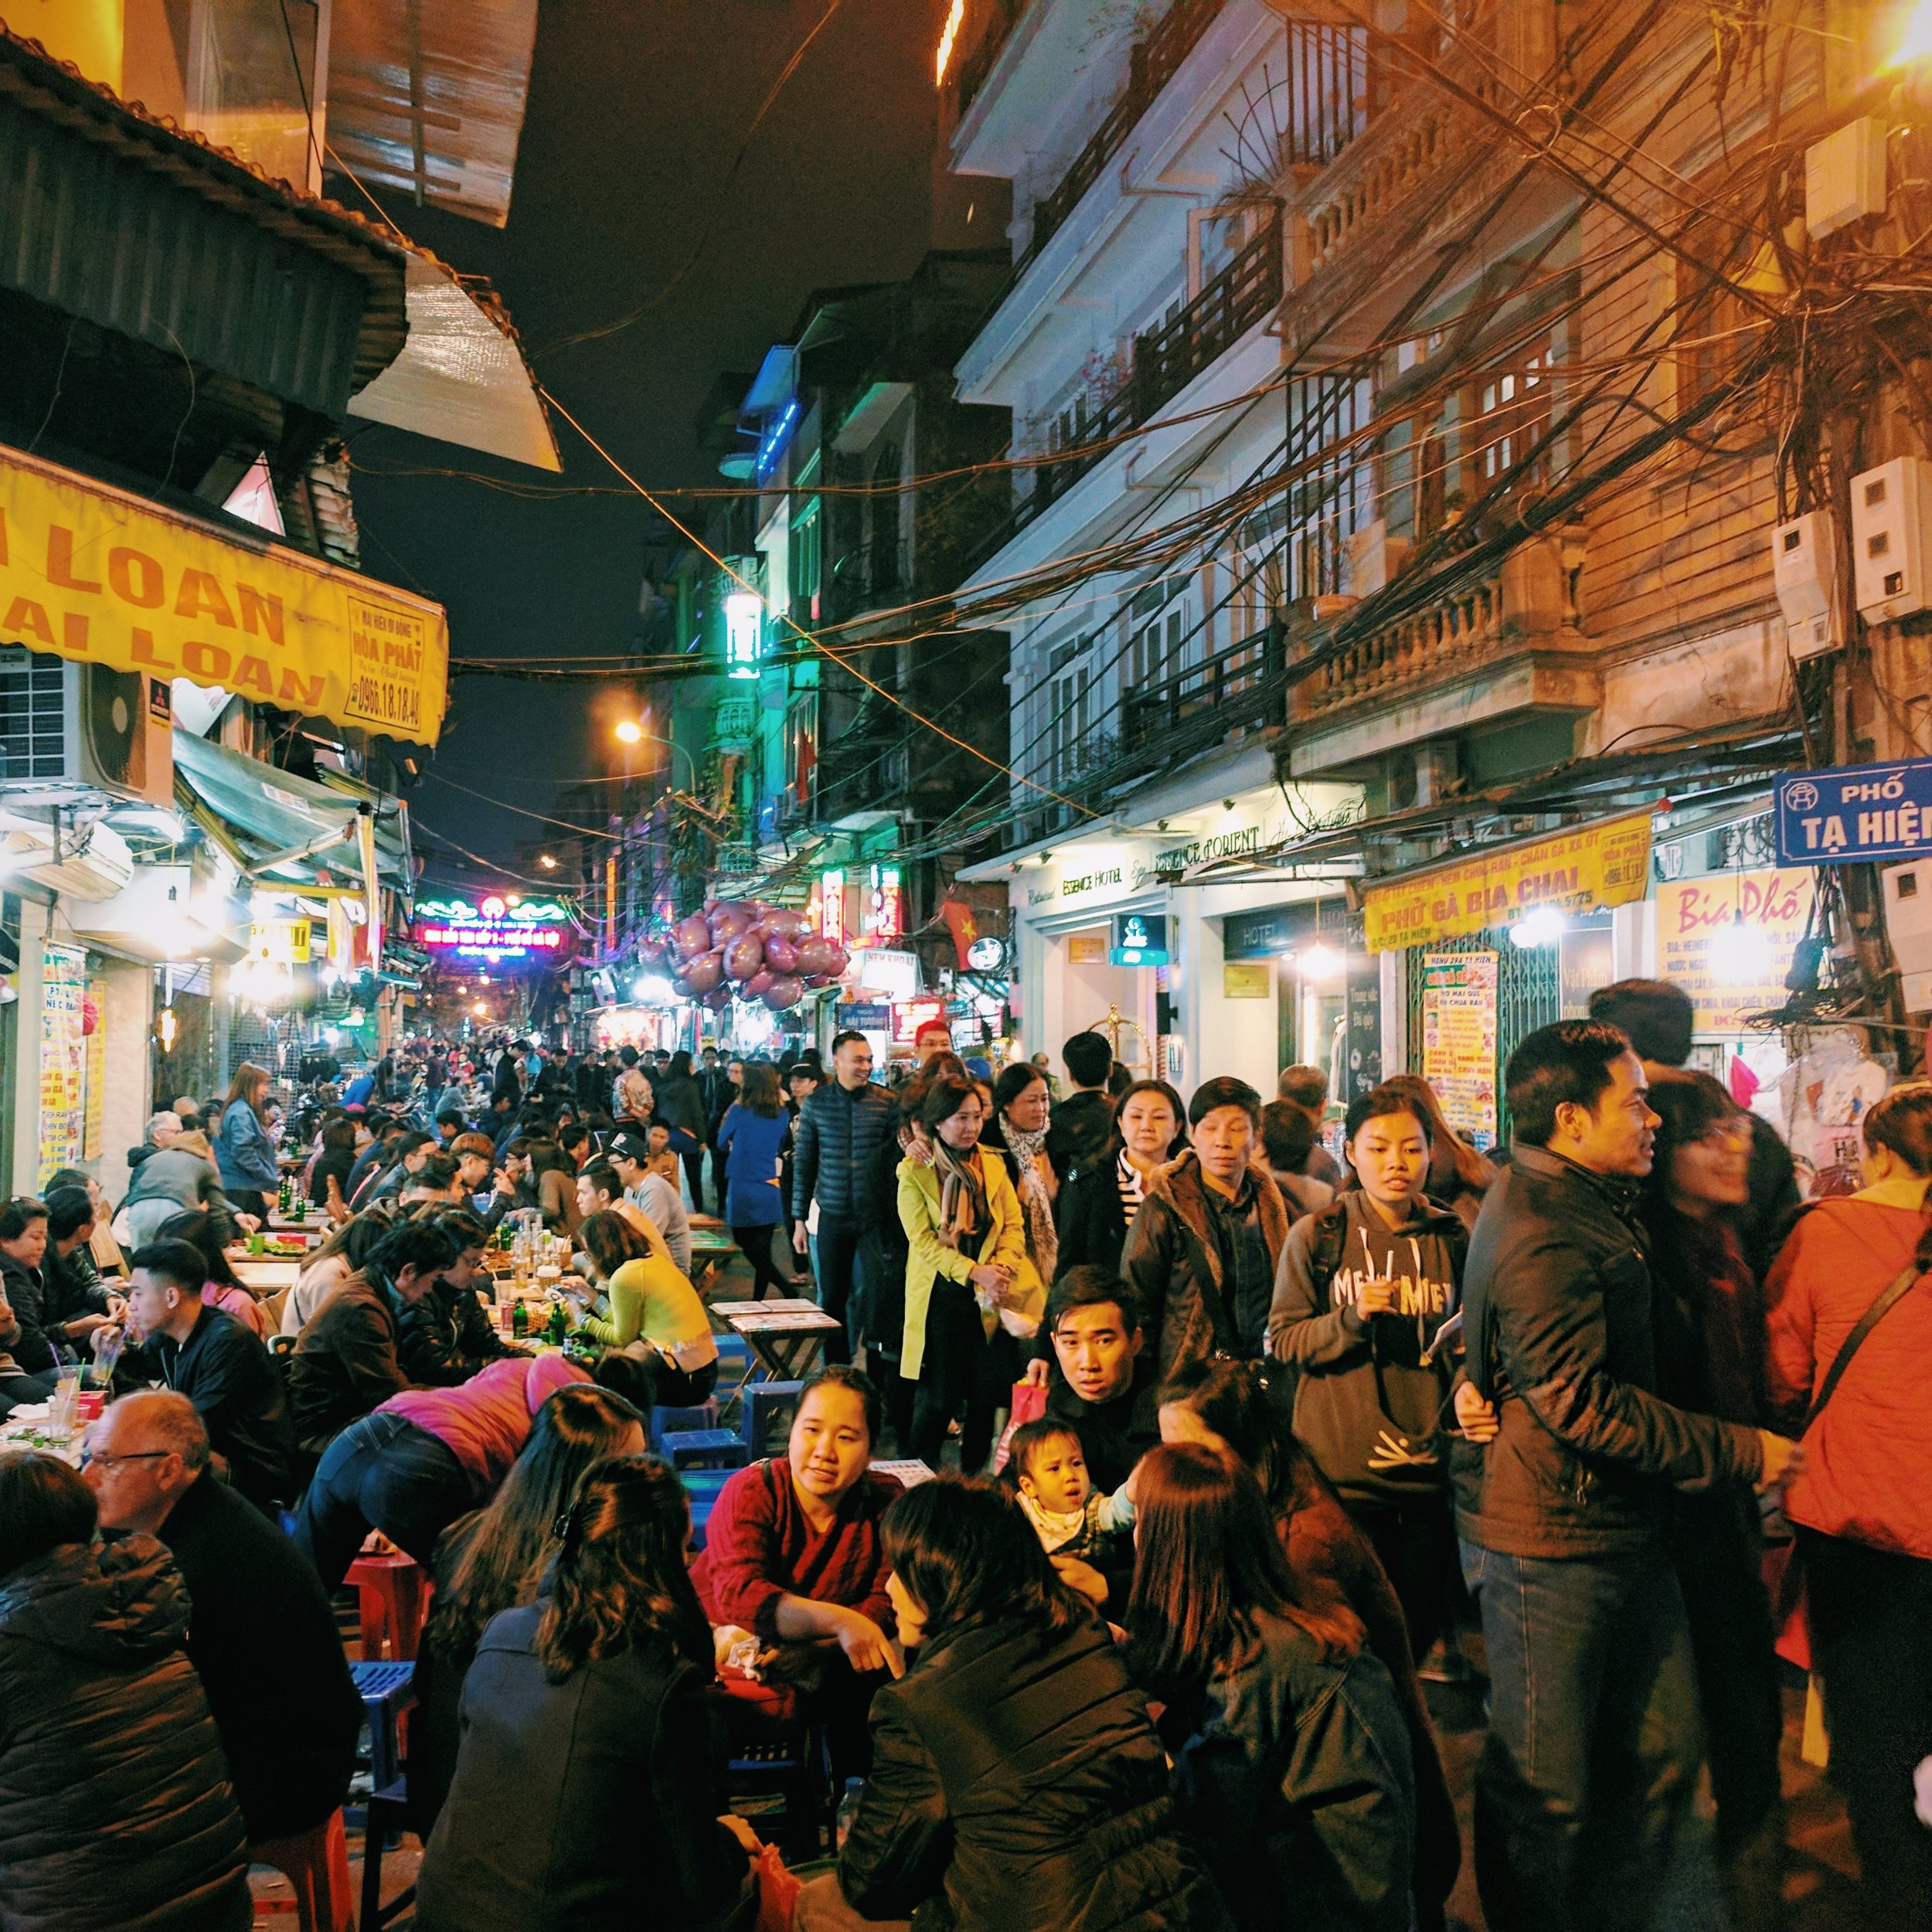 Hanoi nightlife: Plastic stools, fresh beer, and dubious motorbike parking.